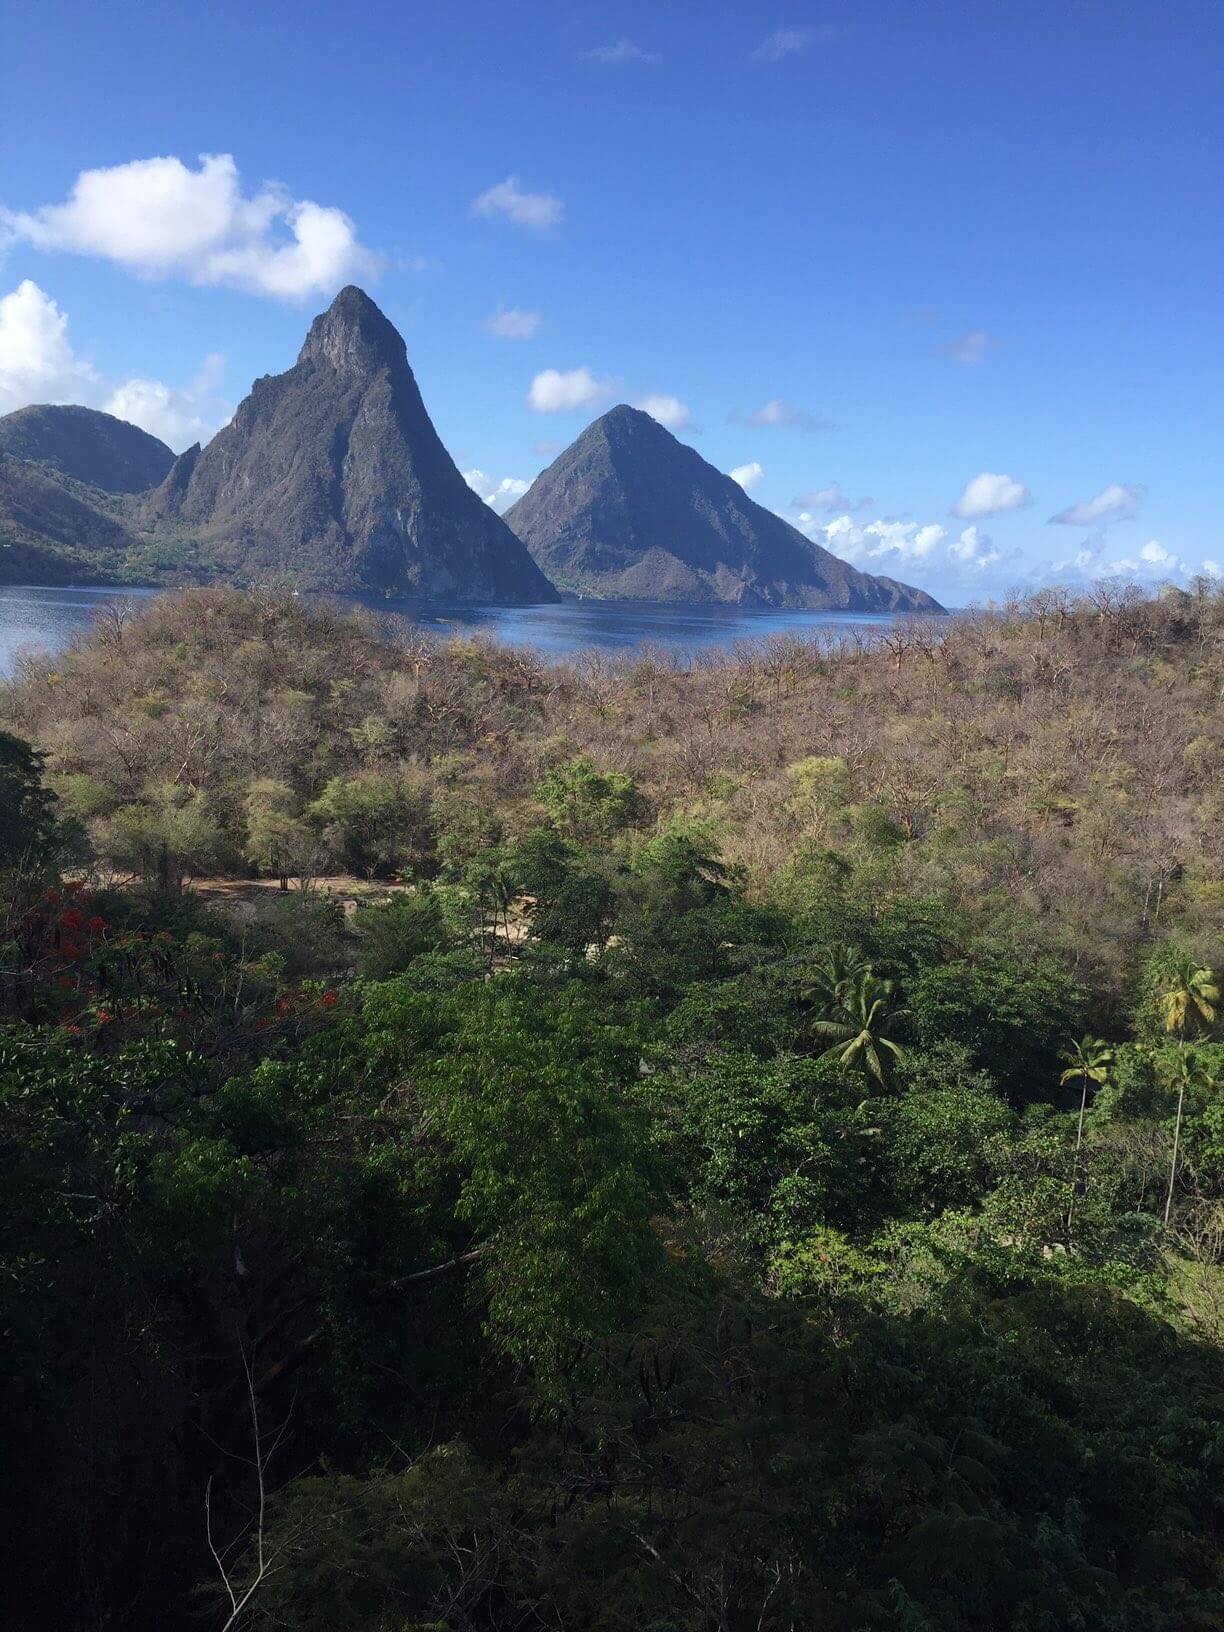 Safertourism.com: Good-bye for now to Saint Lucia